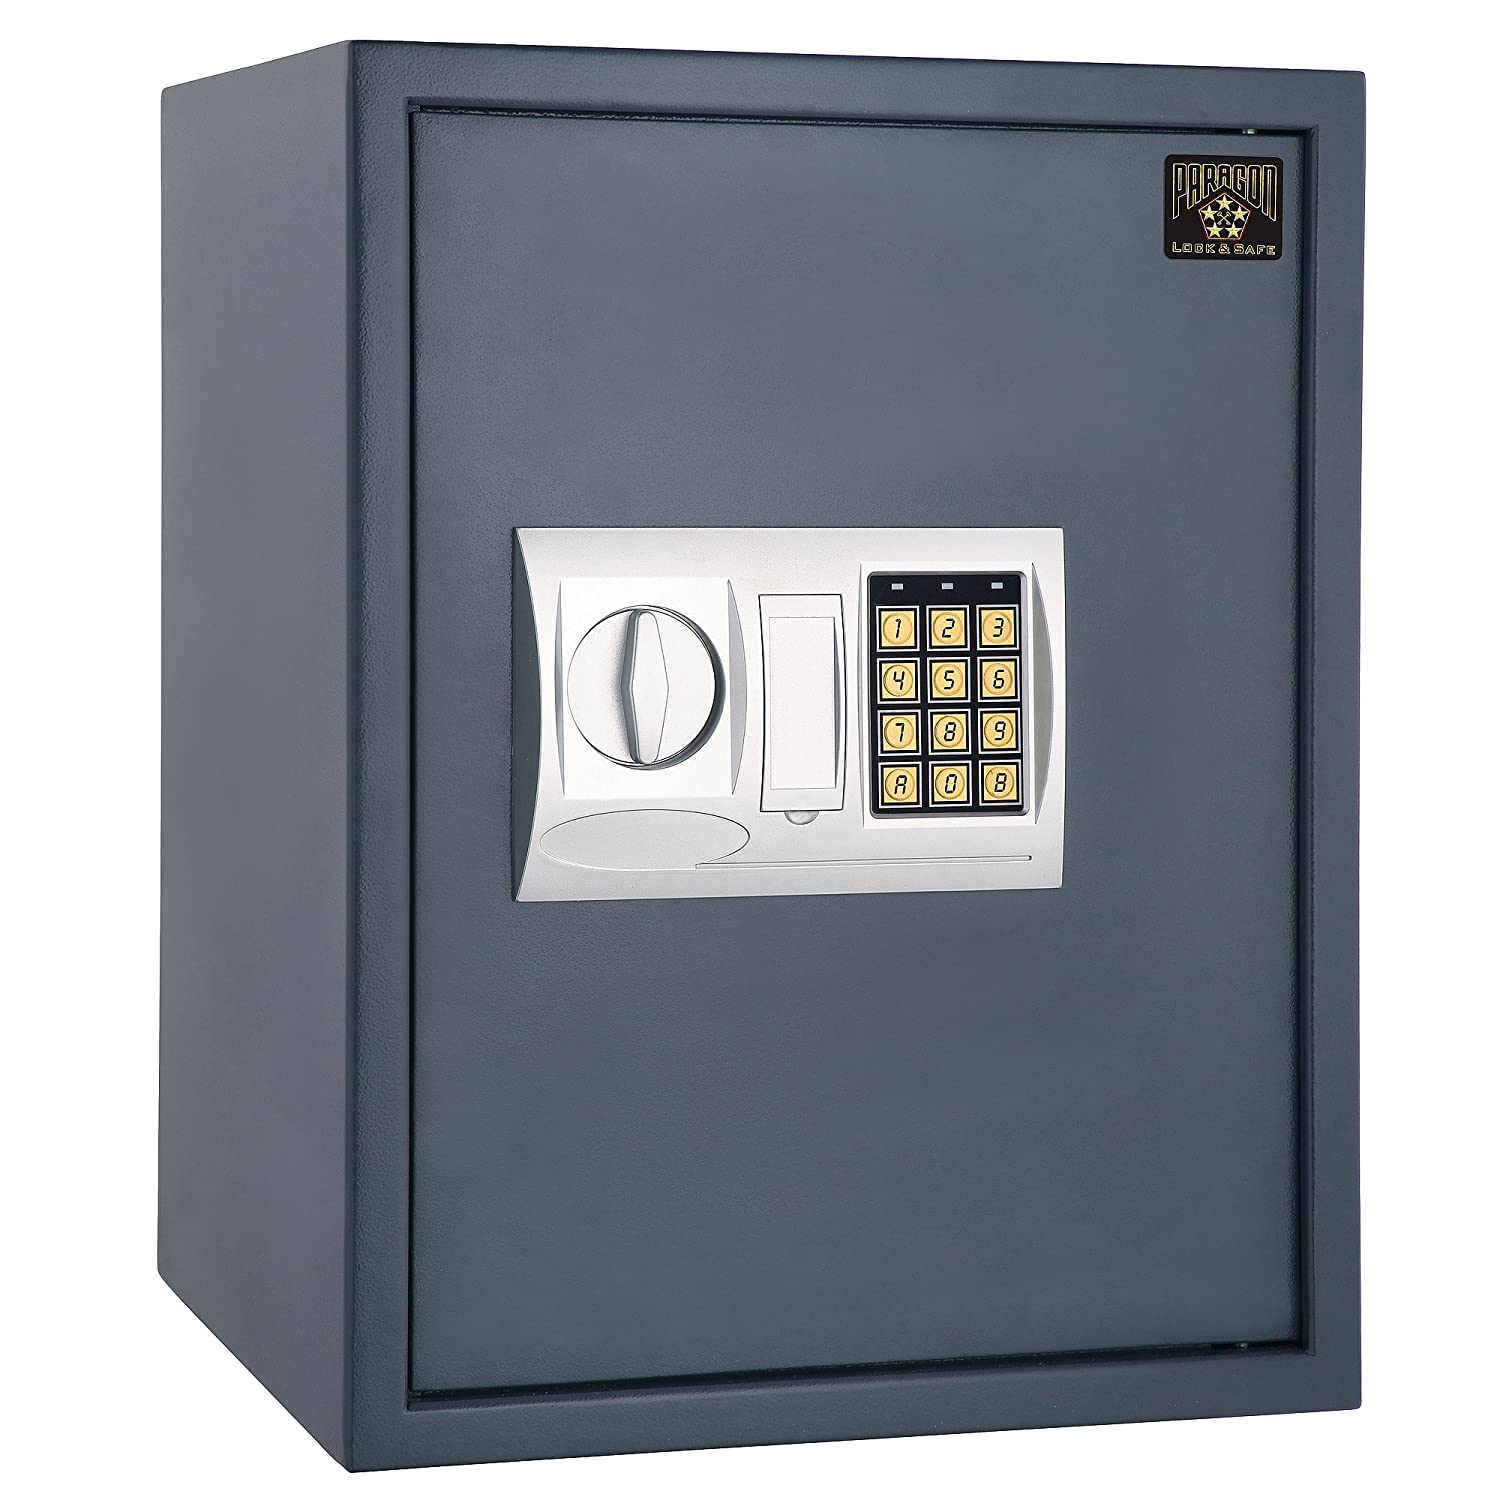 Image of 7805 Paragon Lock & Safe ParaGuard Premiere Electronic Digital Safe Home Security Home Improvements